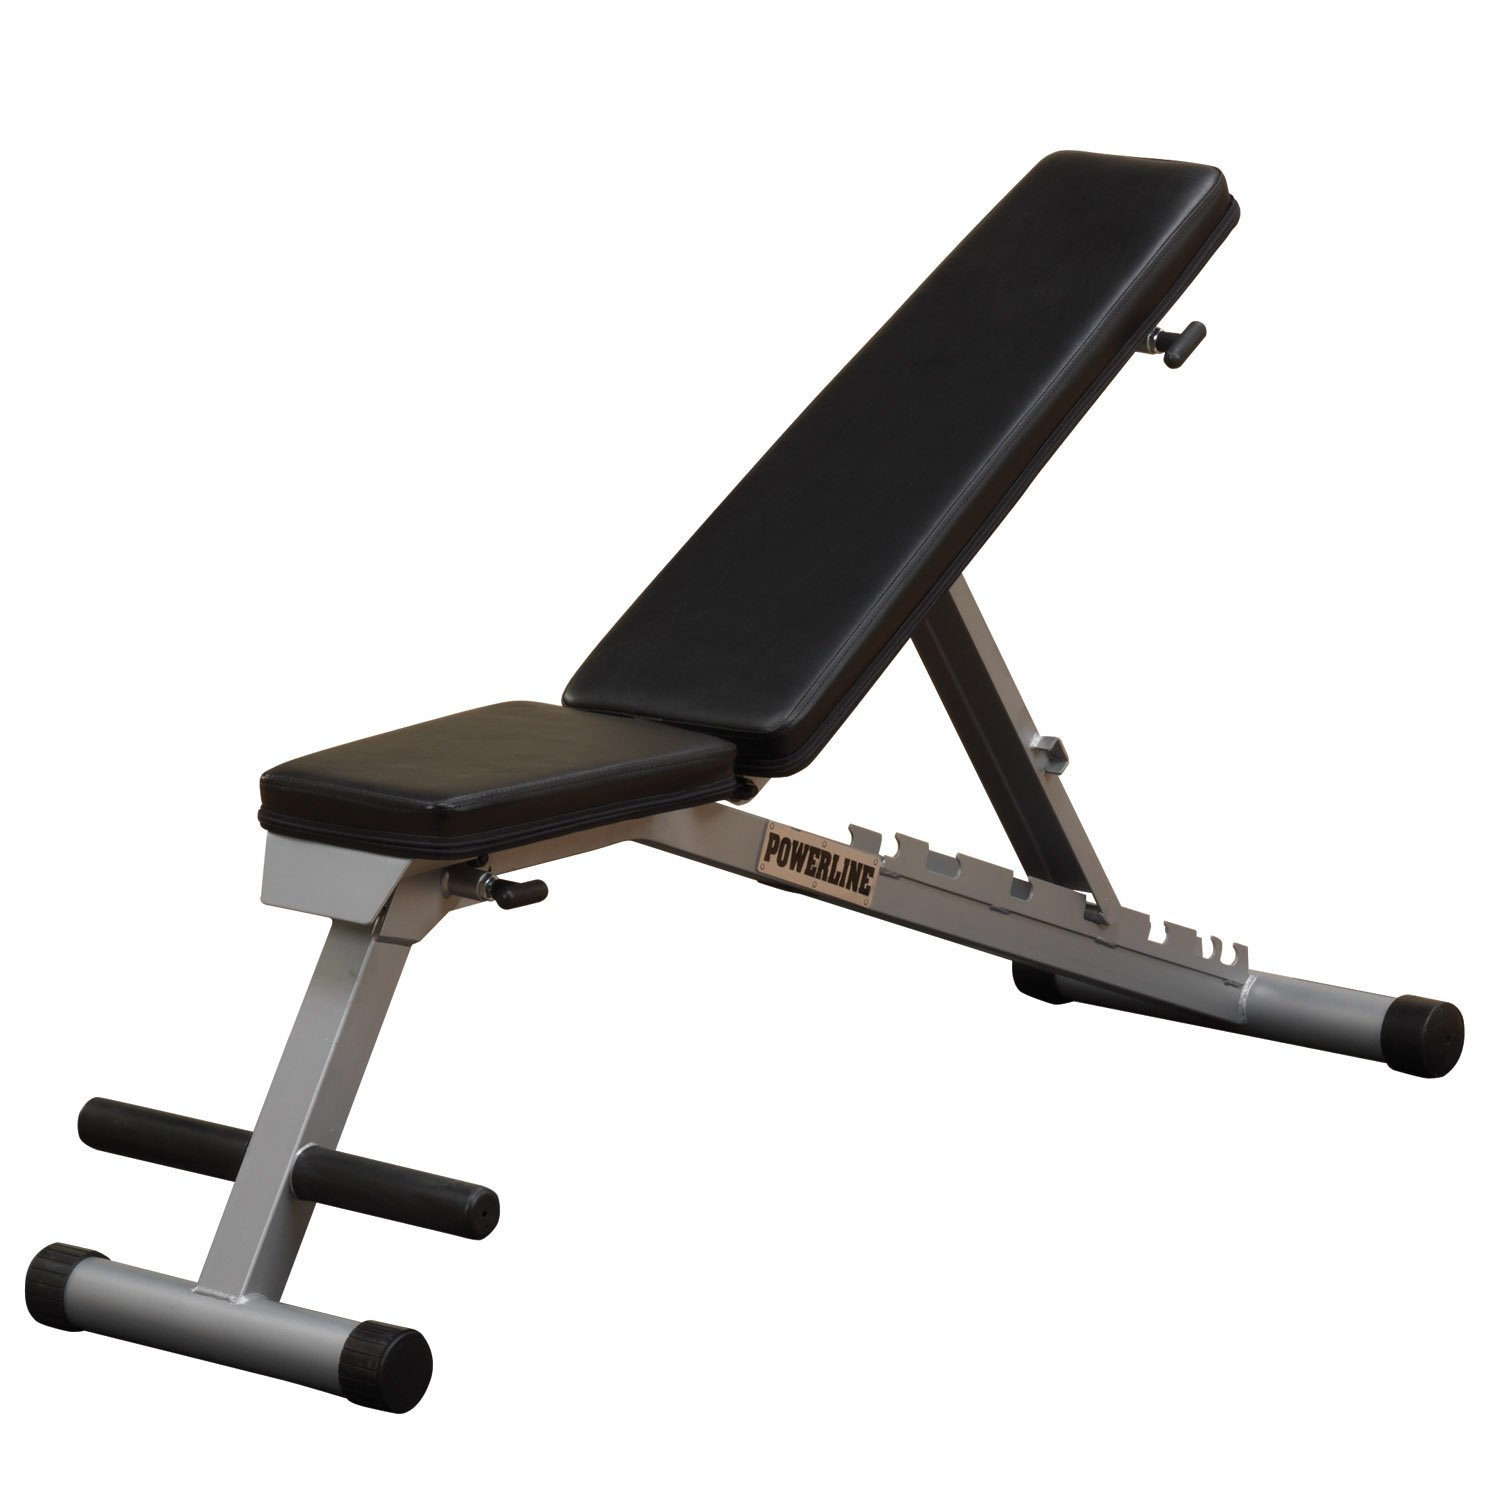 Powerline pfid125x folding bench review Weight bench and weights